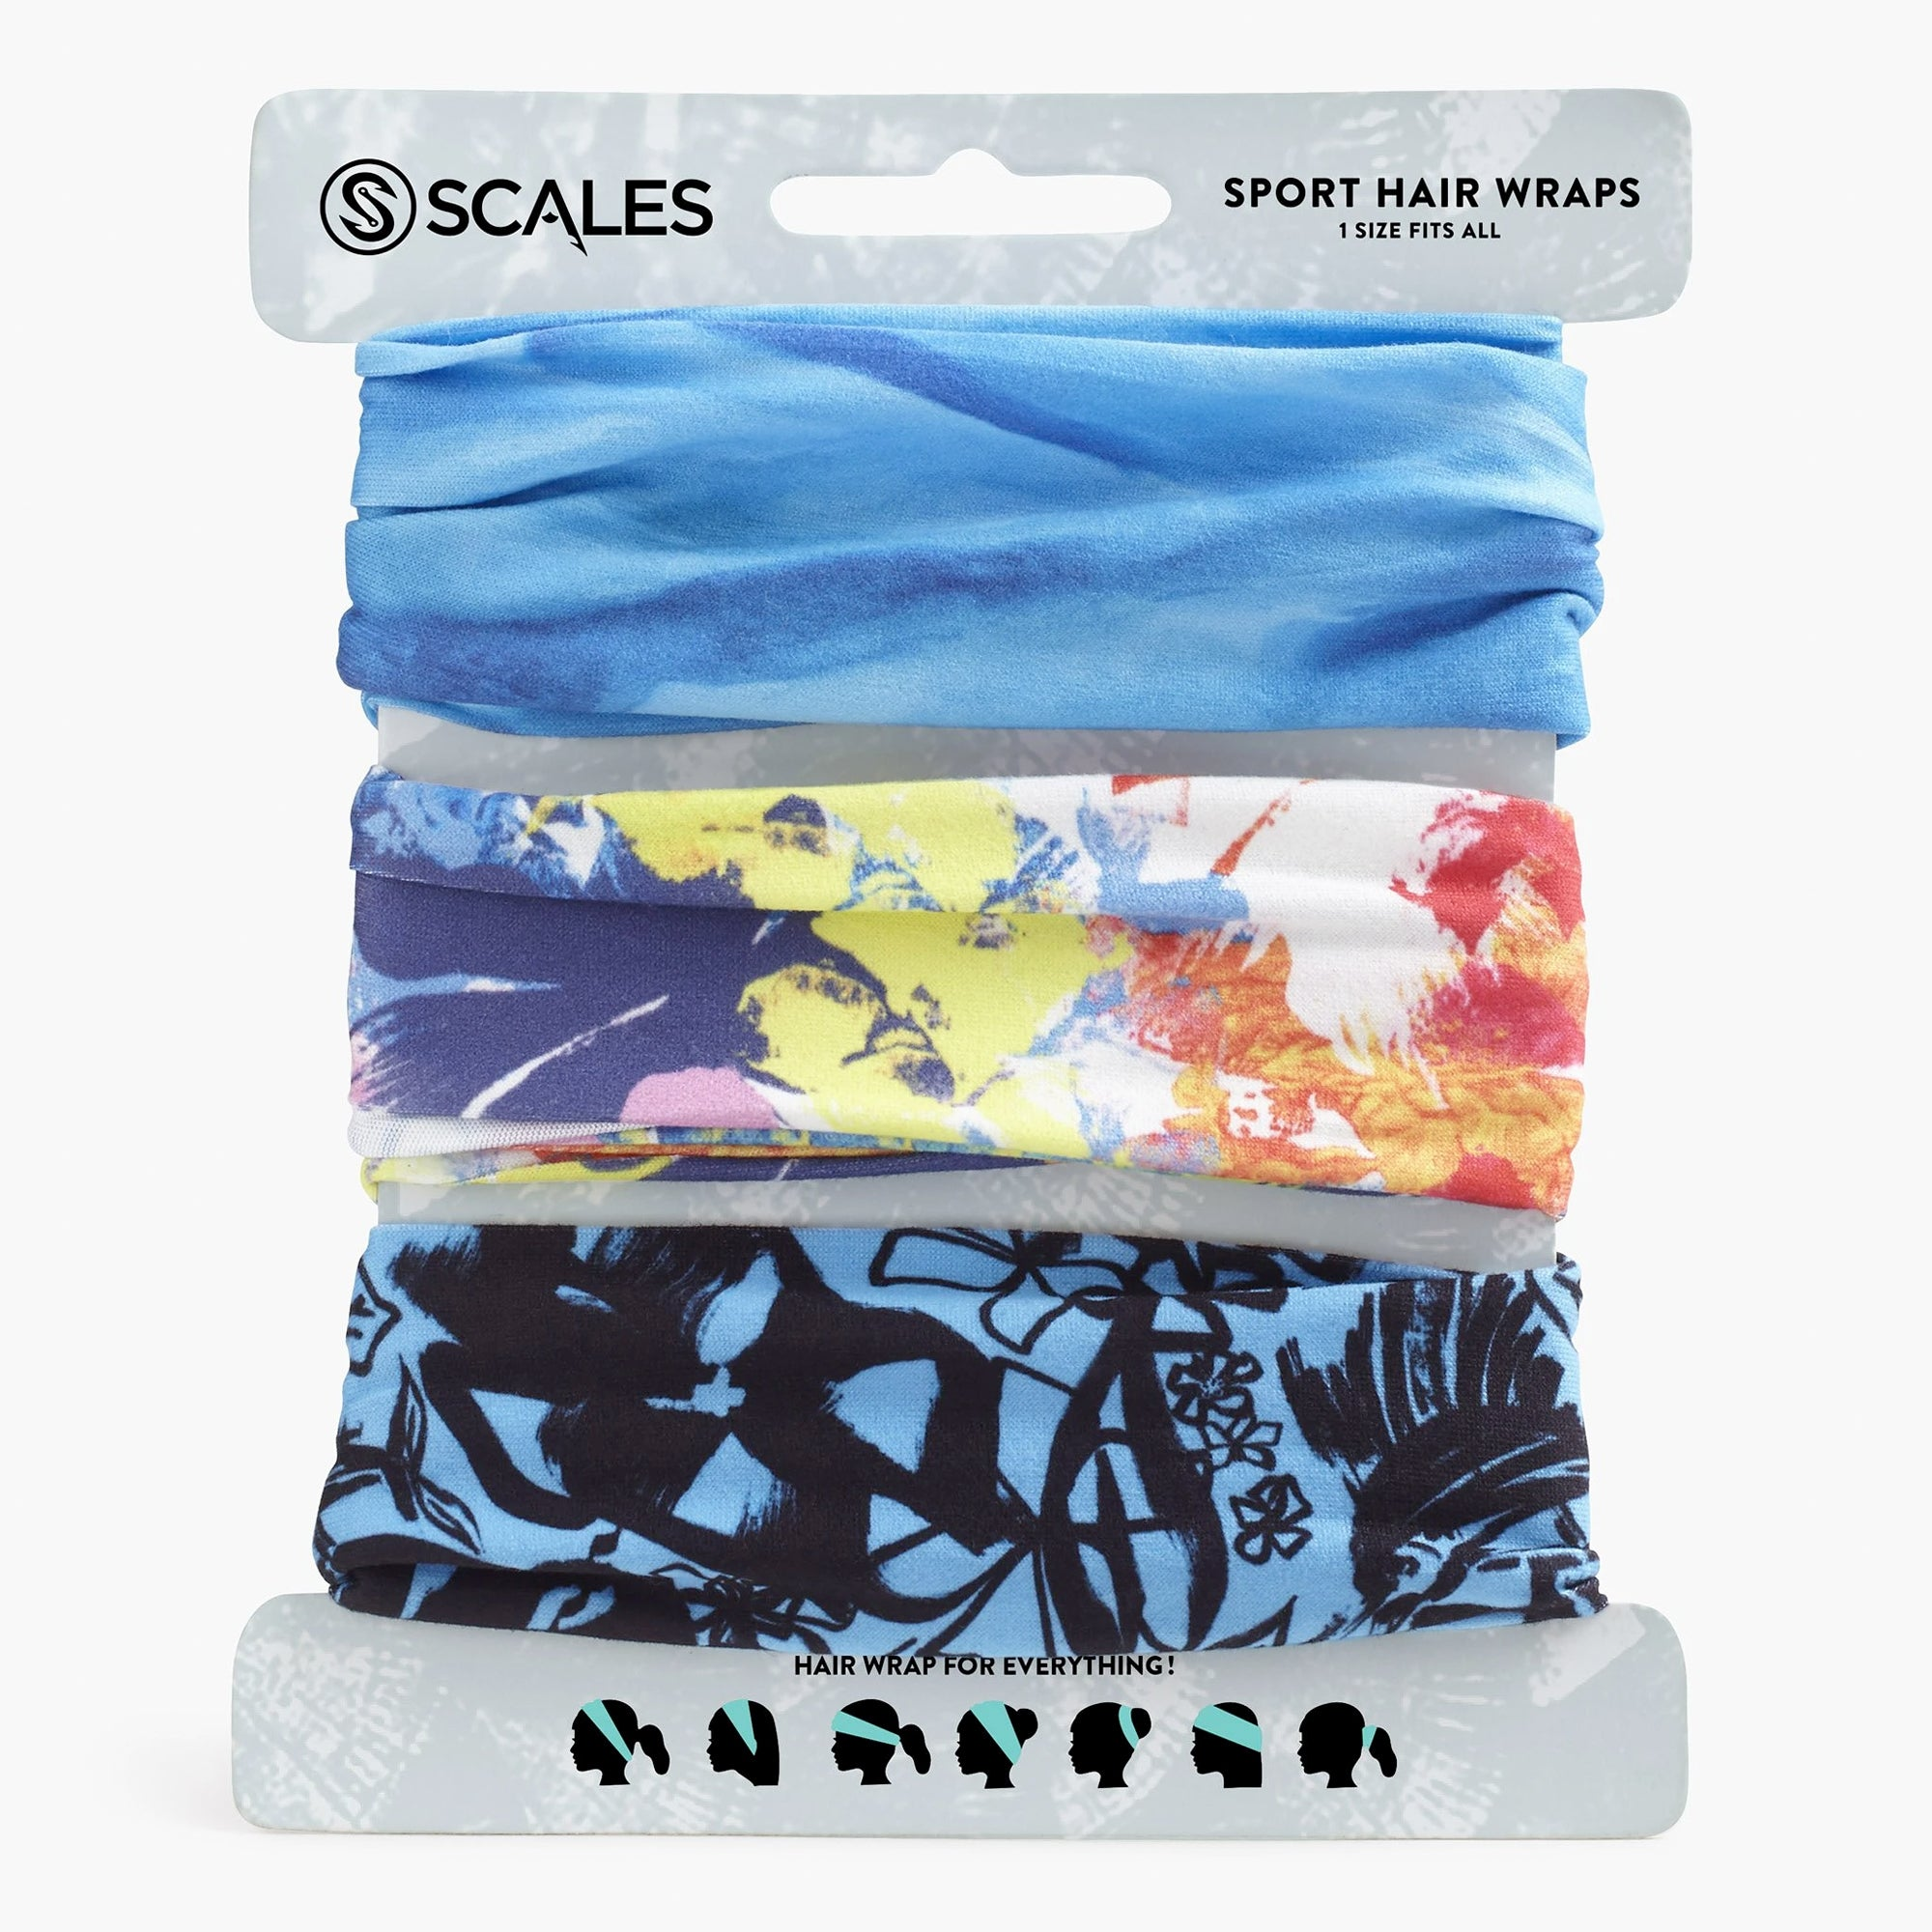 Scales Sport Hair Wrap Combo Pack - Topics